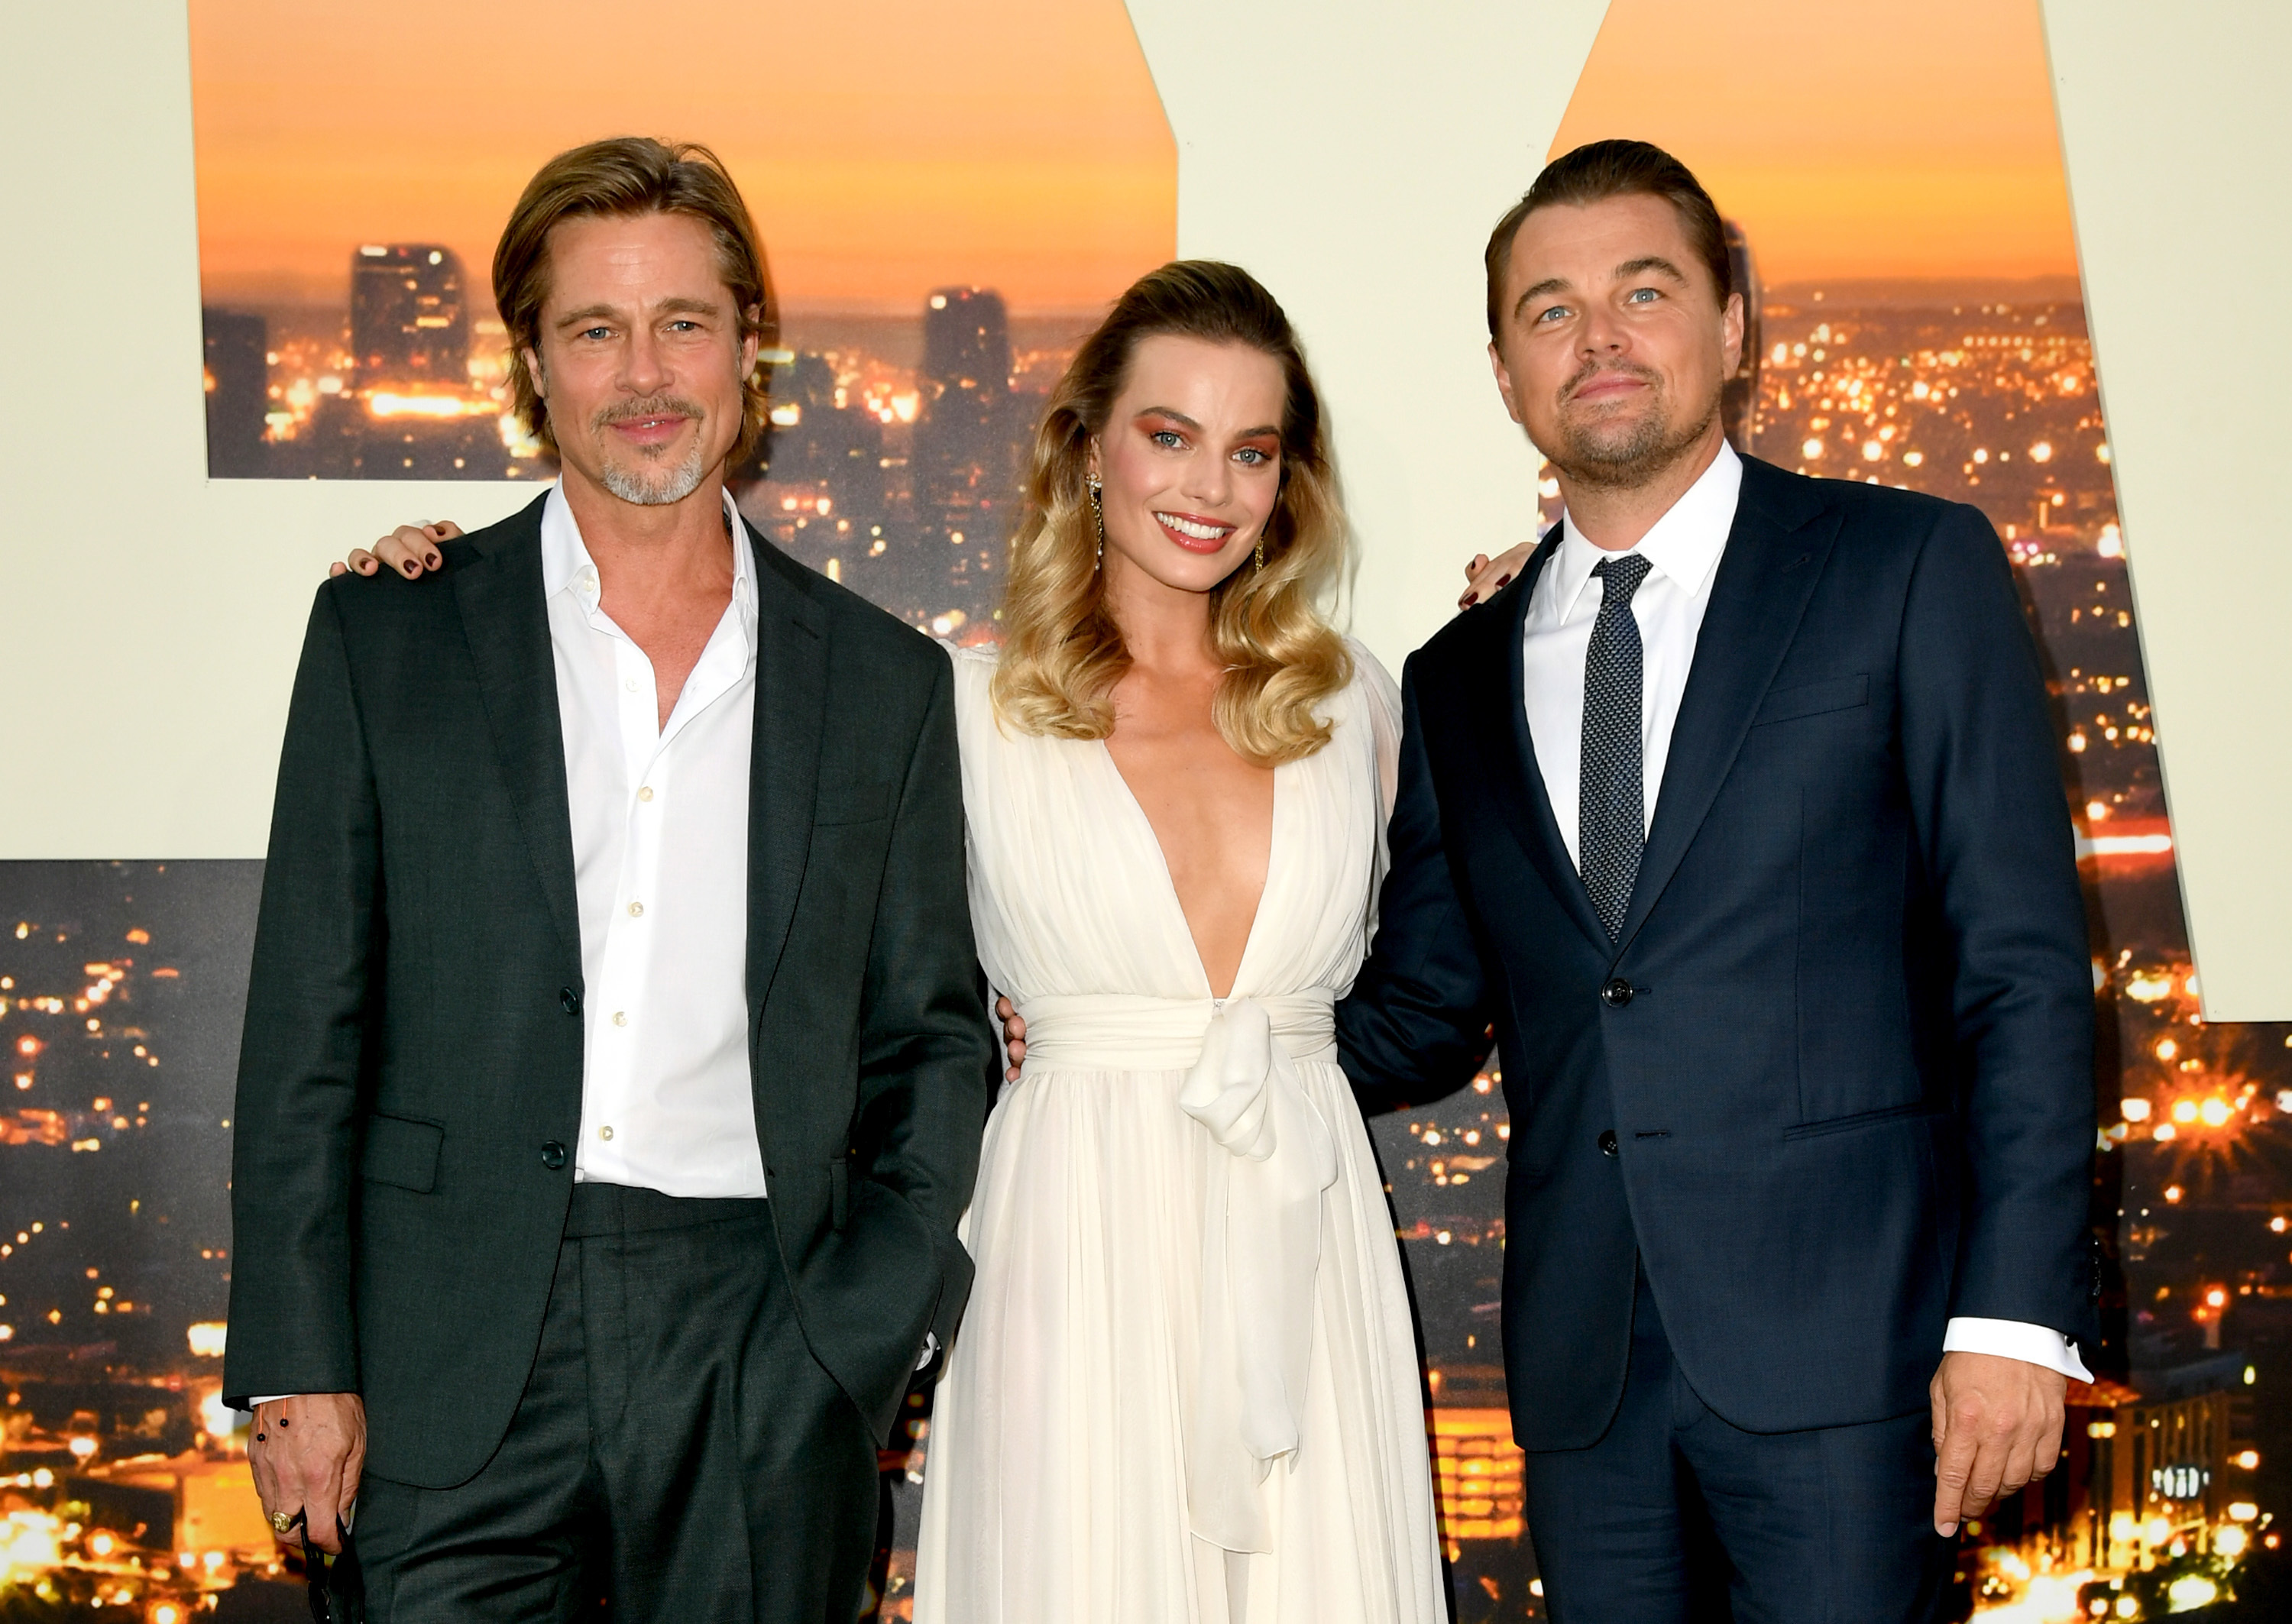 Once Upon A Time At Christmas 2019.Once Upon A Time In Hollywood Premiere Red Carpet